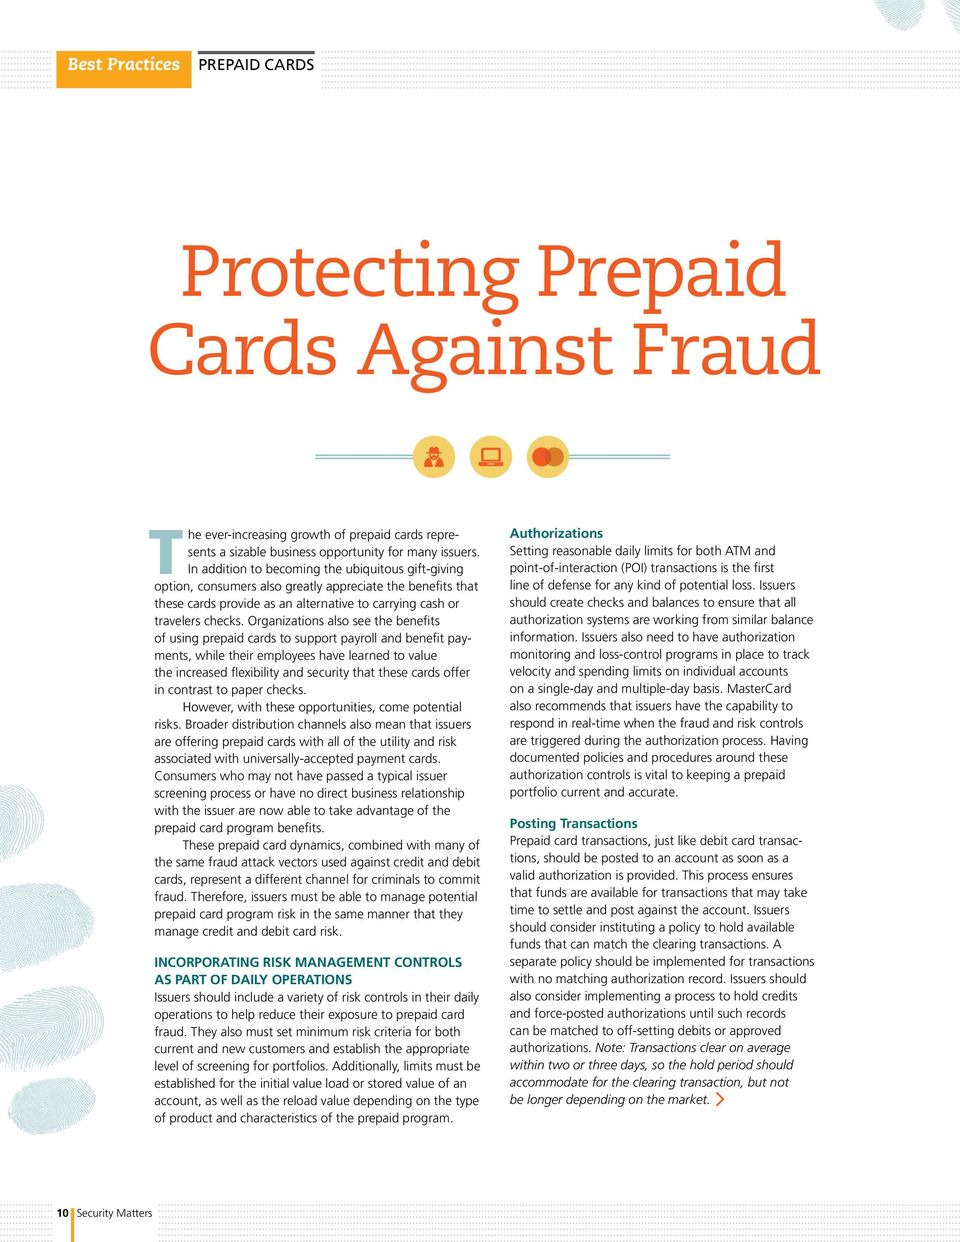 Organizations also see the benefits of using prepaid cards to support payroll and benefit payments, while their employees have learned to value the increased flexibility and security that these cards